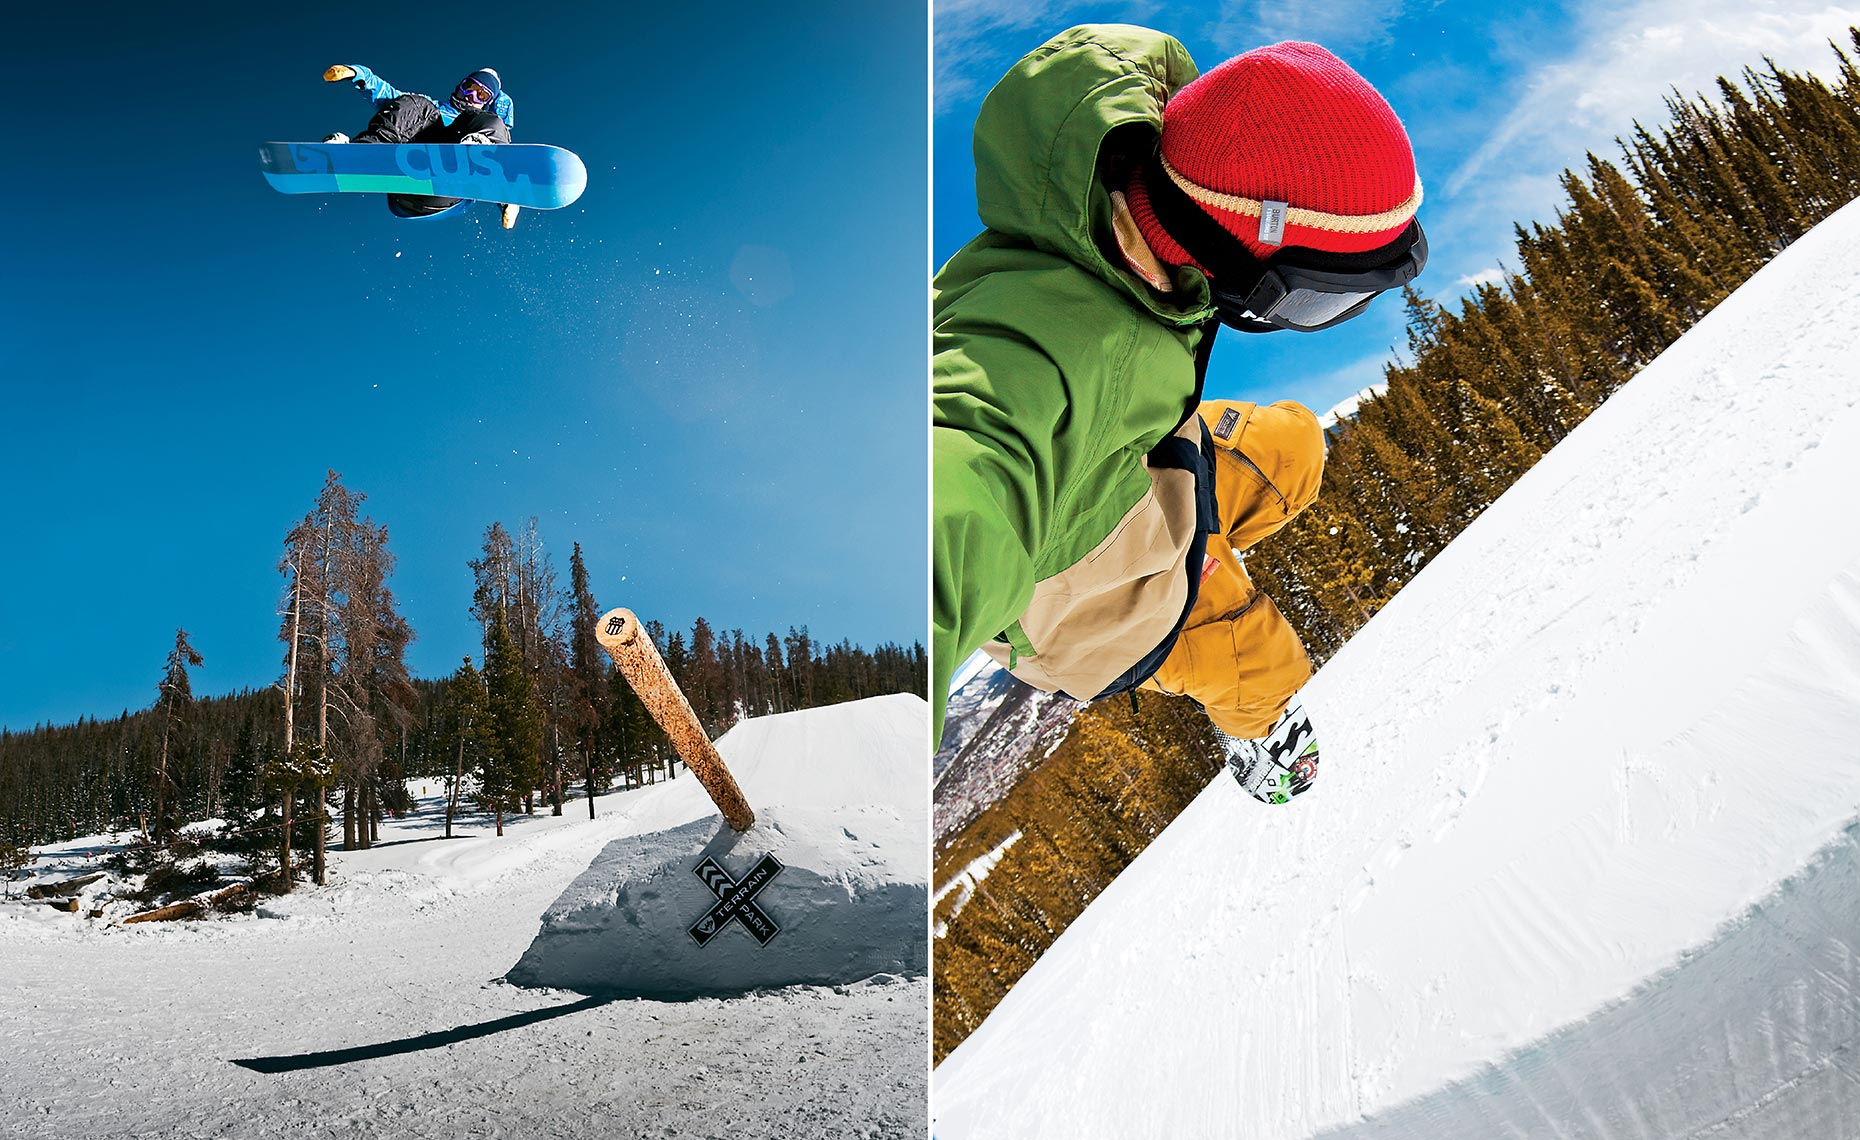 06_Marko_Grilo_Grilc_Winter_Park_Jack_Mitrani_Breckenridge_20_Tricks_POV_Snowboarding_Chris_Wellhausen_Photography.JPG